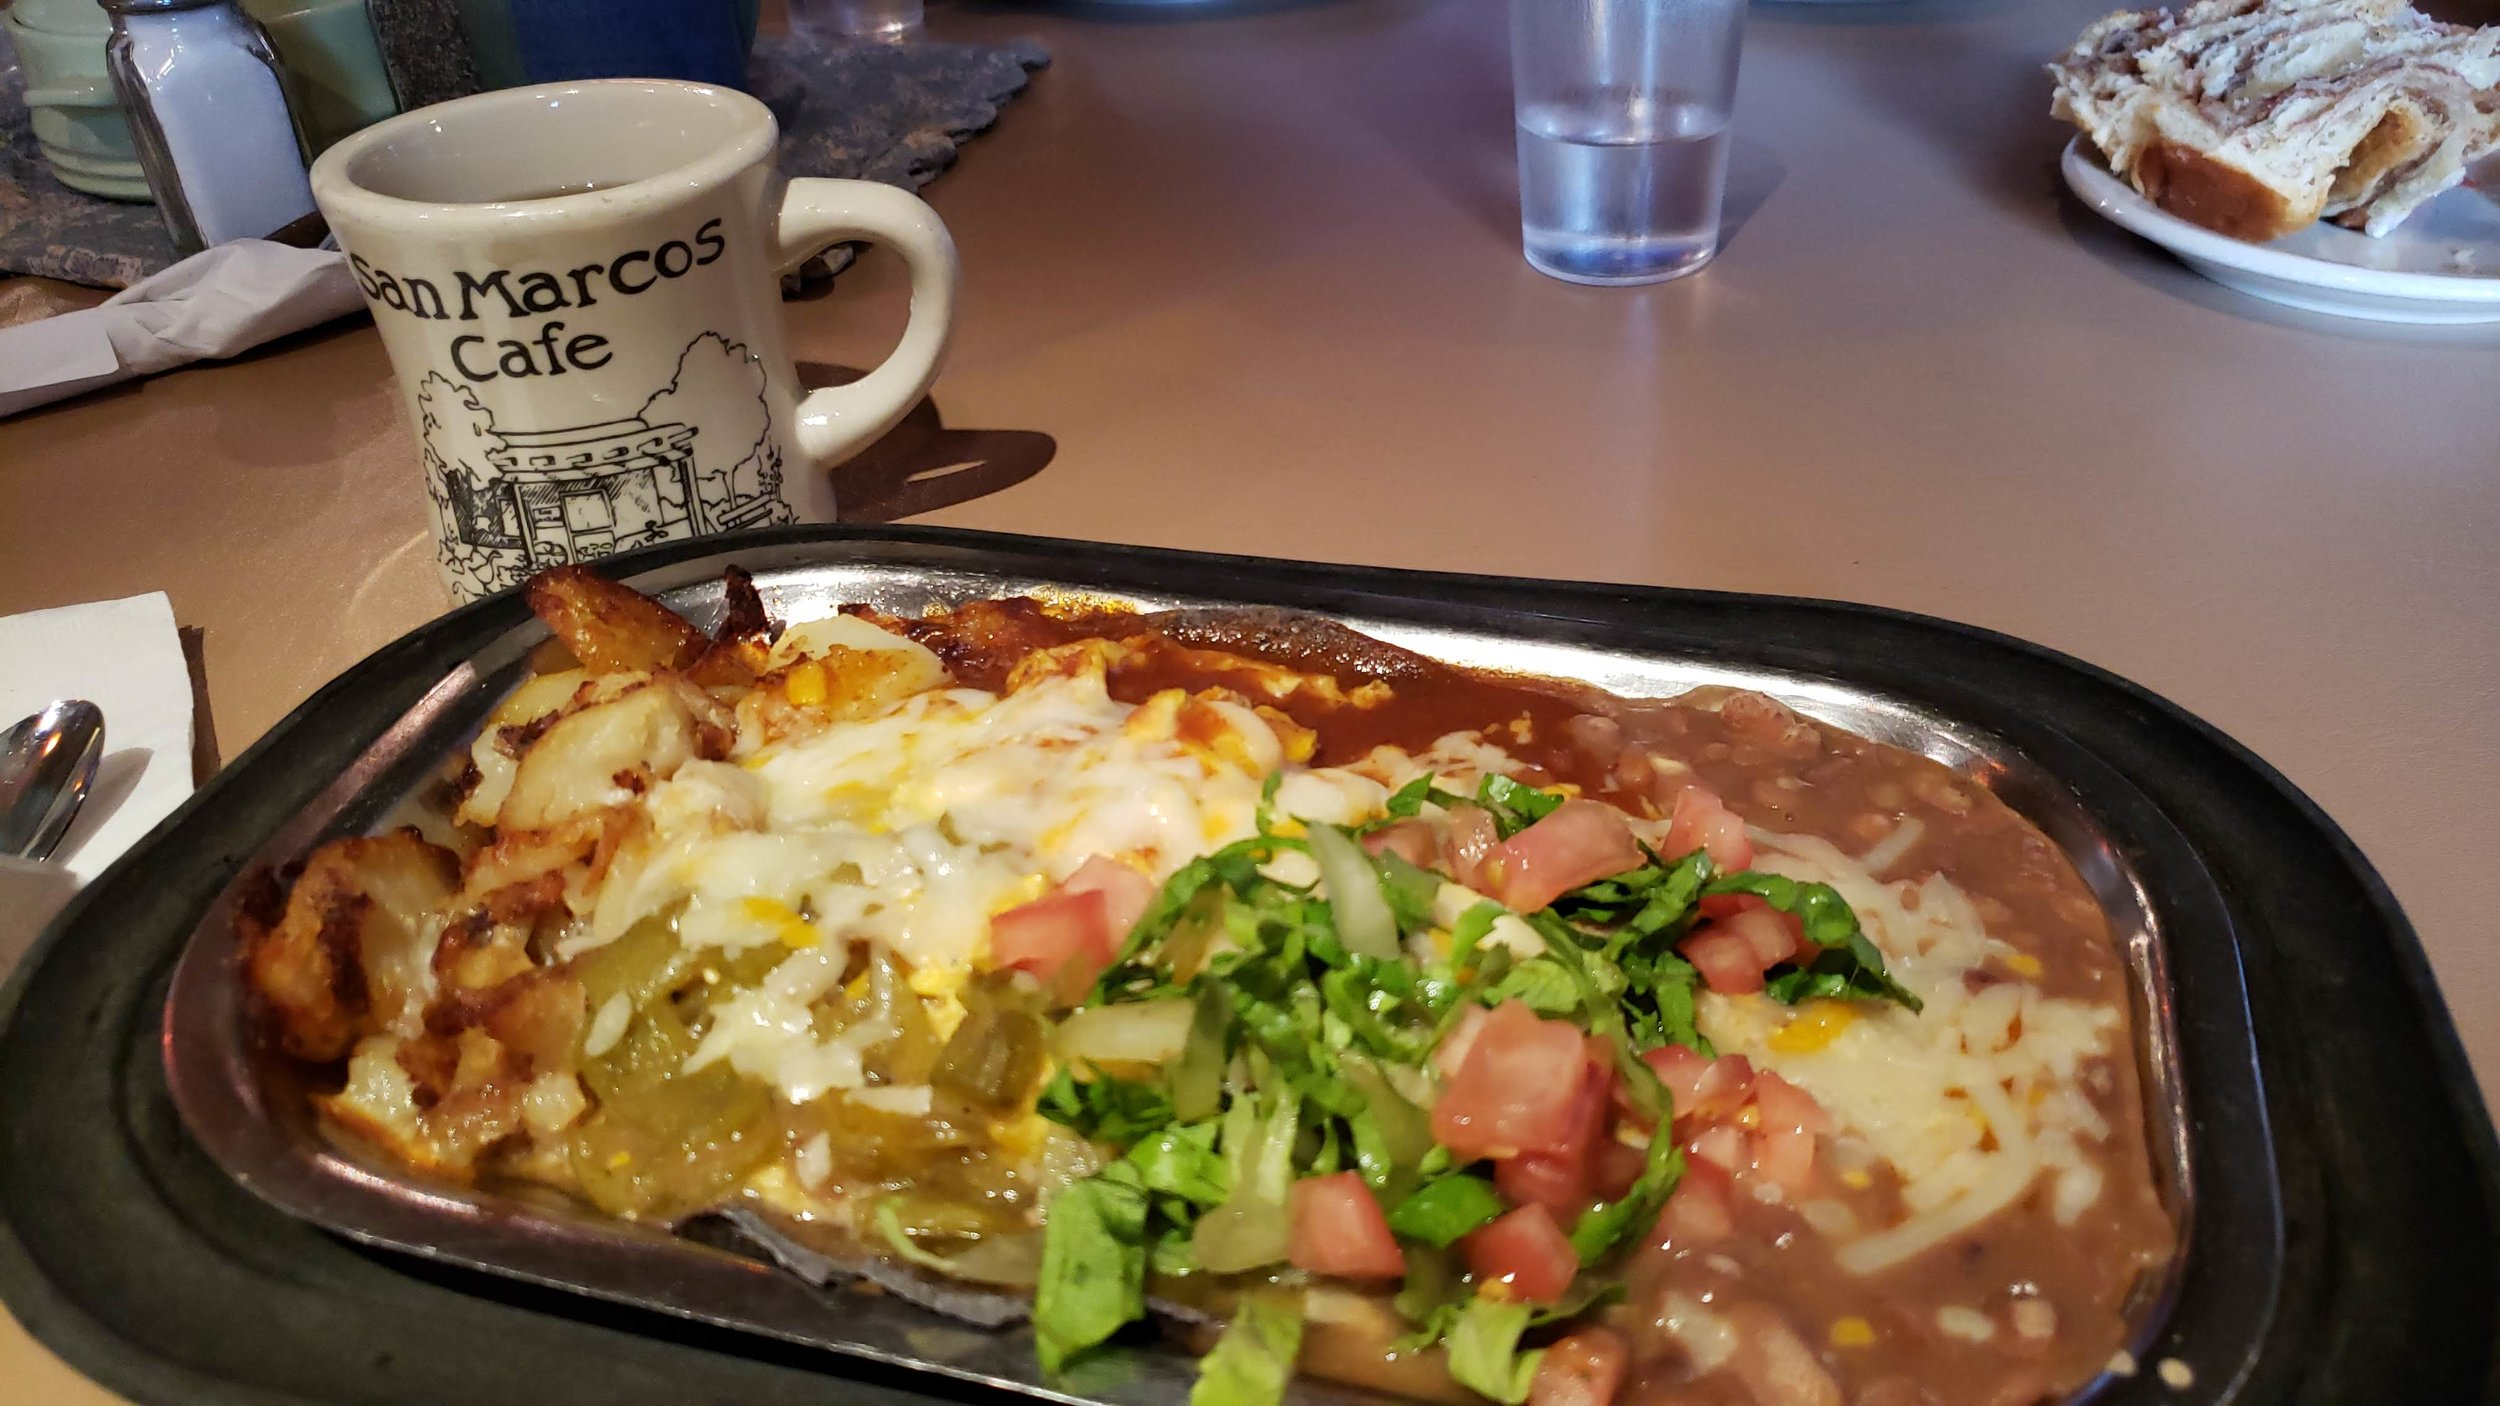 Breakfast at the incredible San Marcos Cafe & Feed Store: Christmas-style Huevos Rancheros (what else?) and coffee.